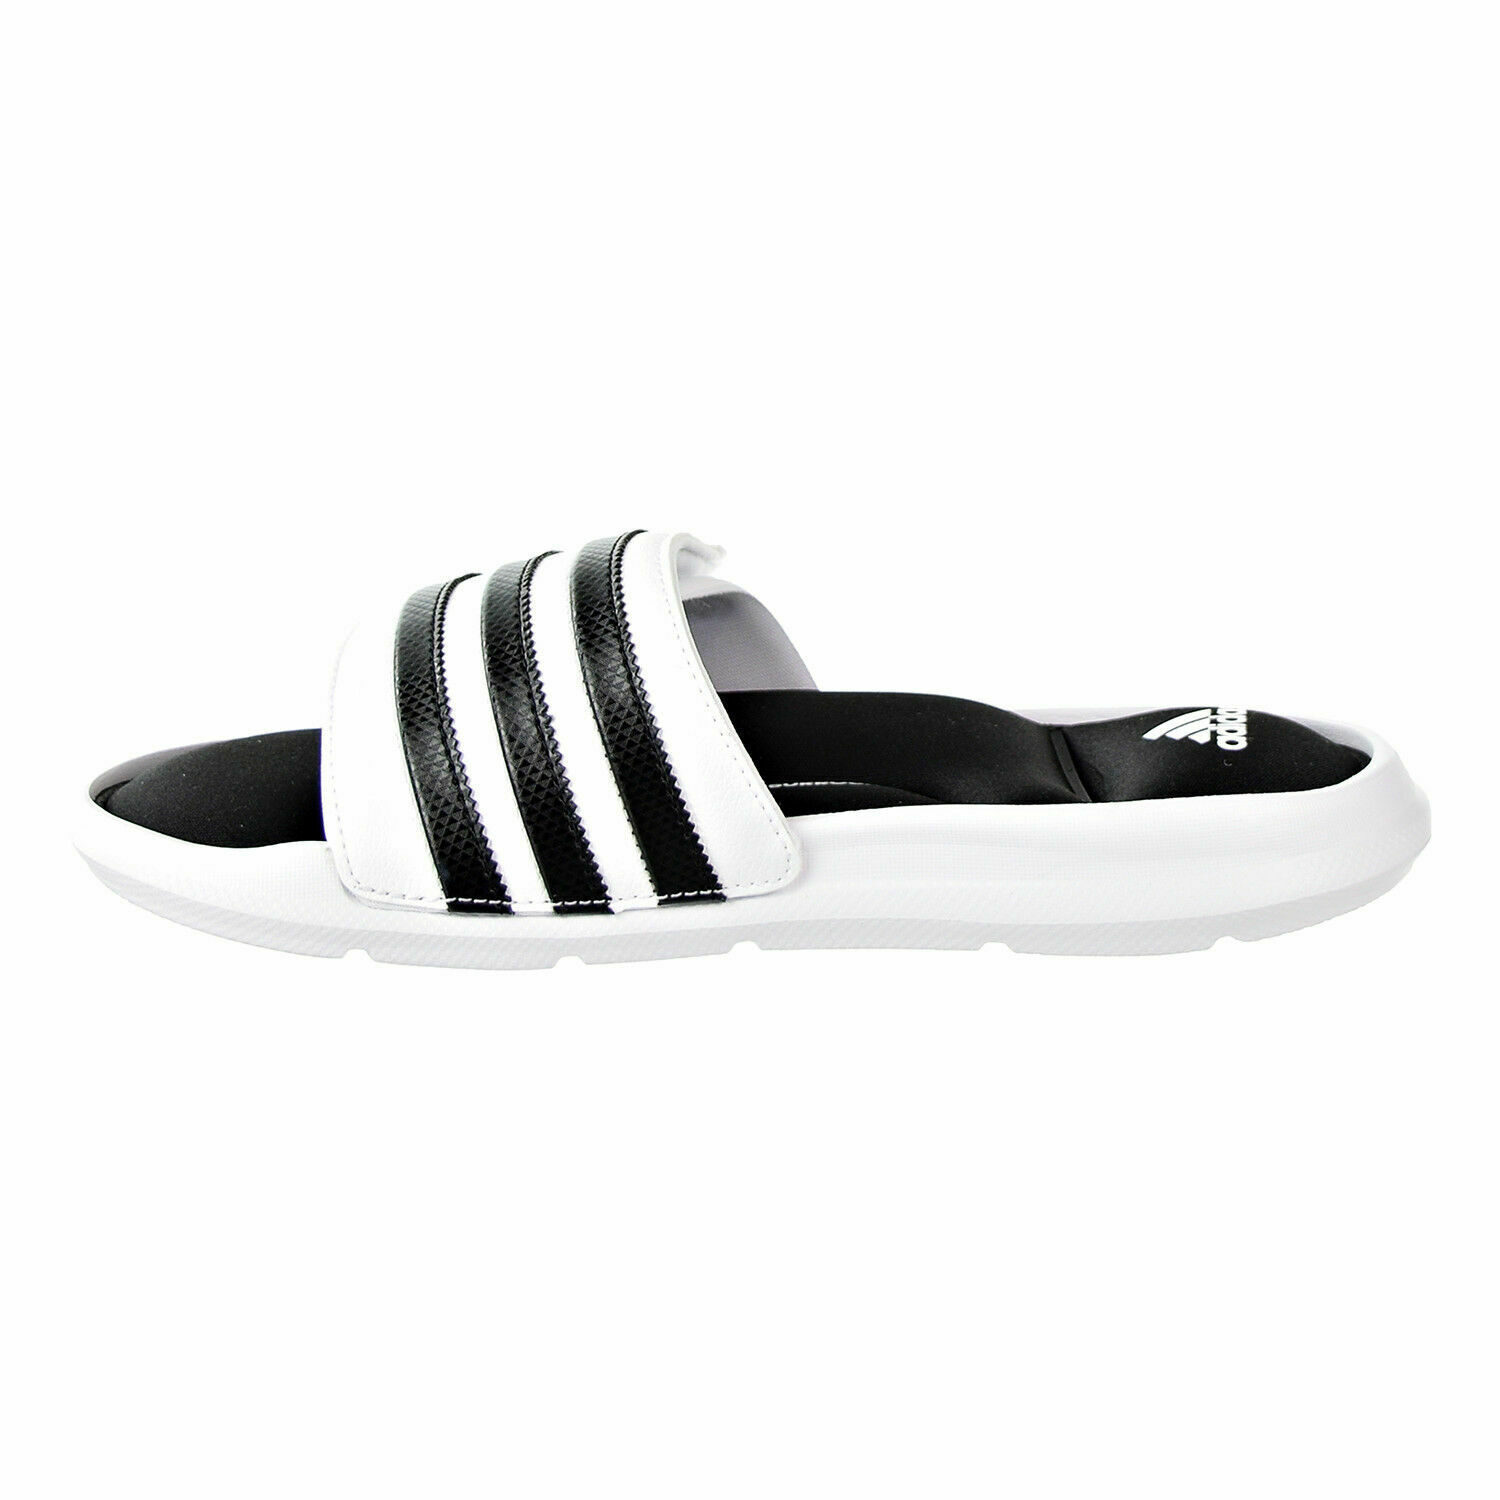 ADIDAS SUPERSTAR SURROUND MEMORY FOAM SLIDE SANDALS MEN SHOES WHITE SIZE 15 NEW image 3